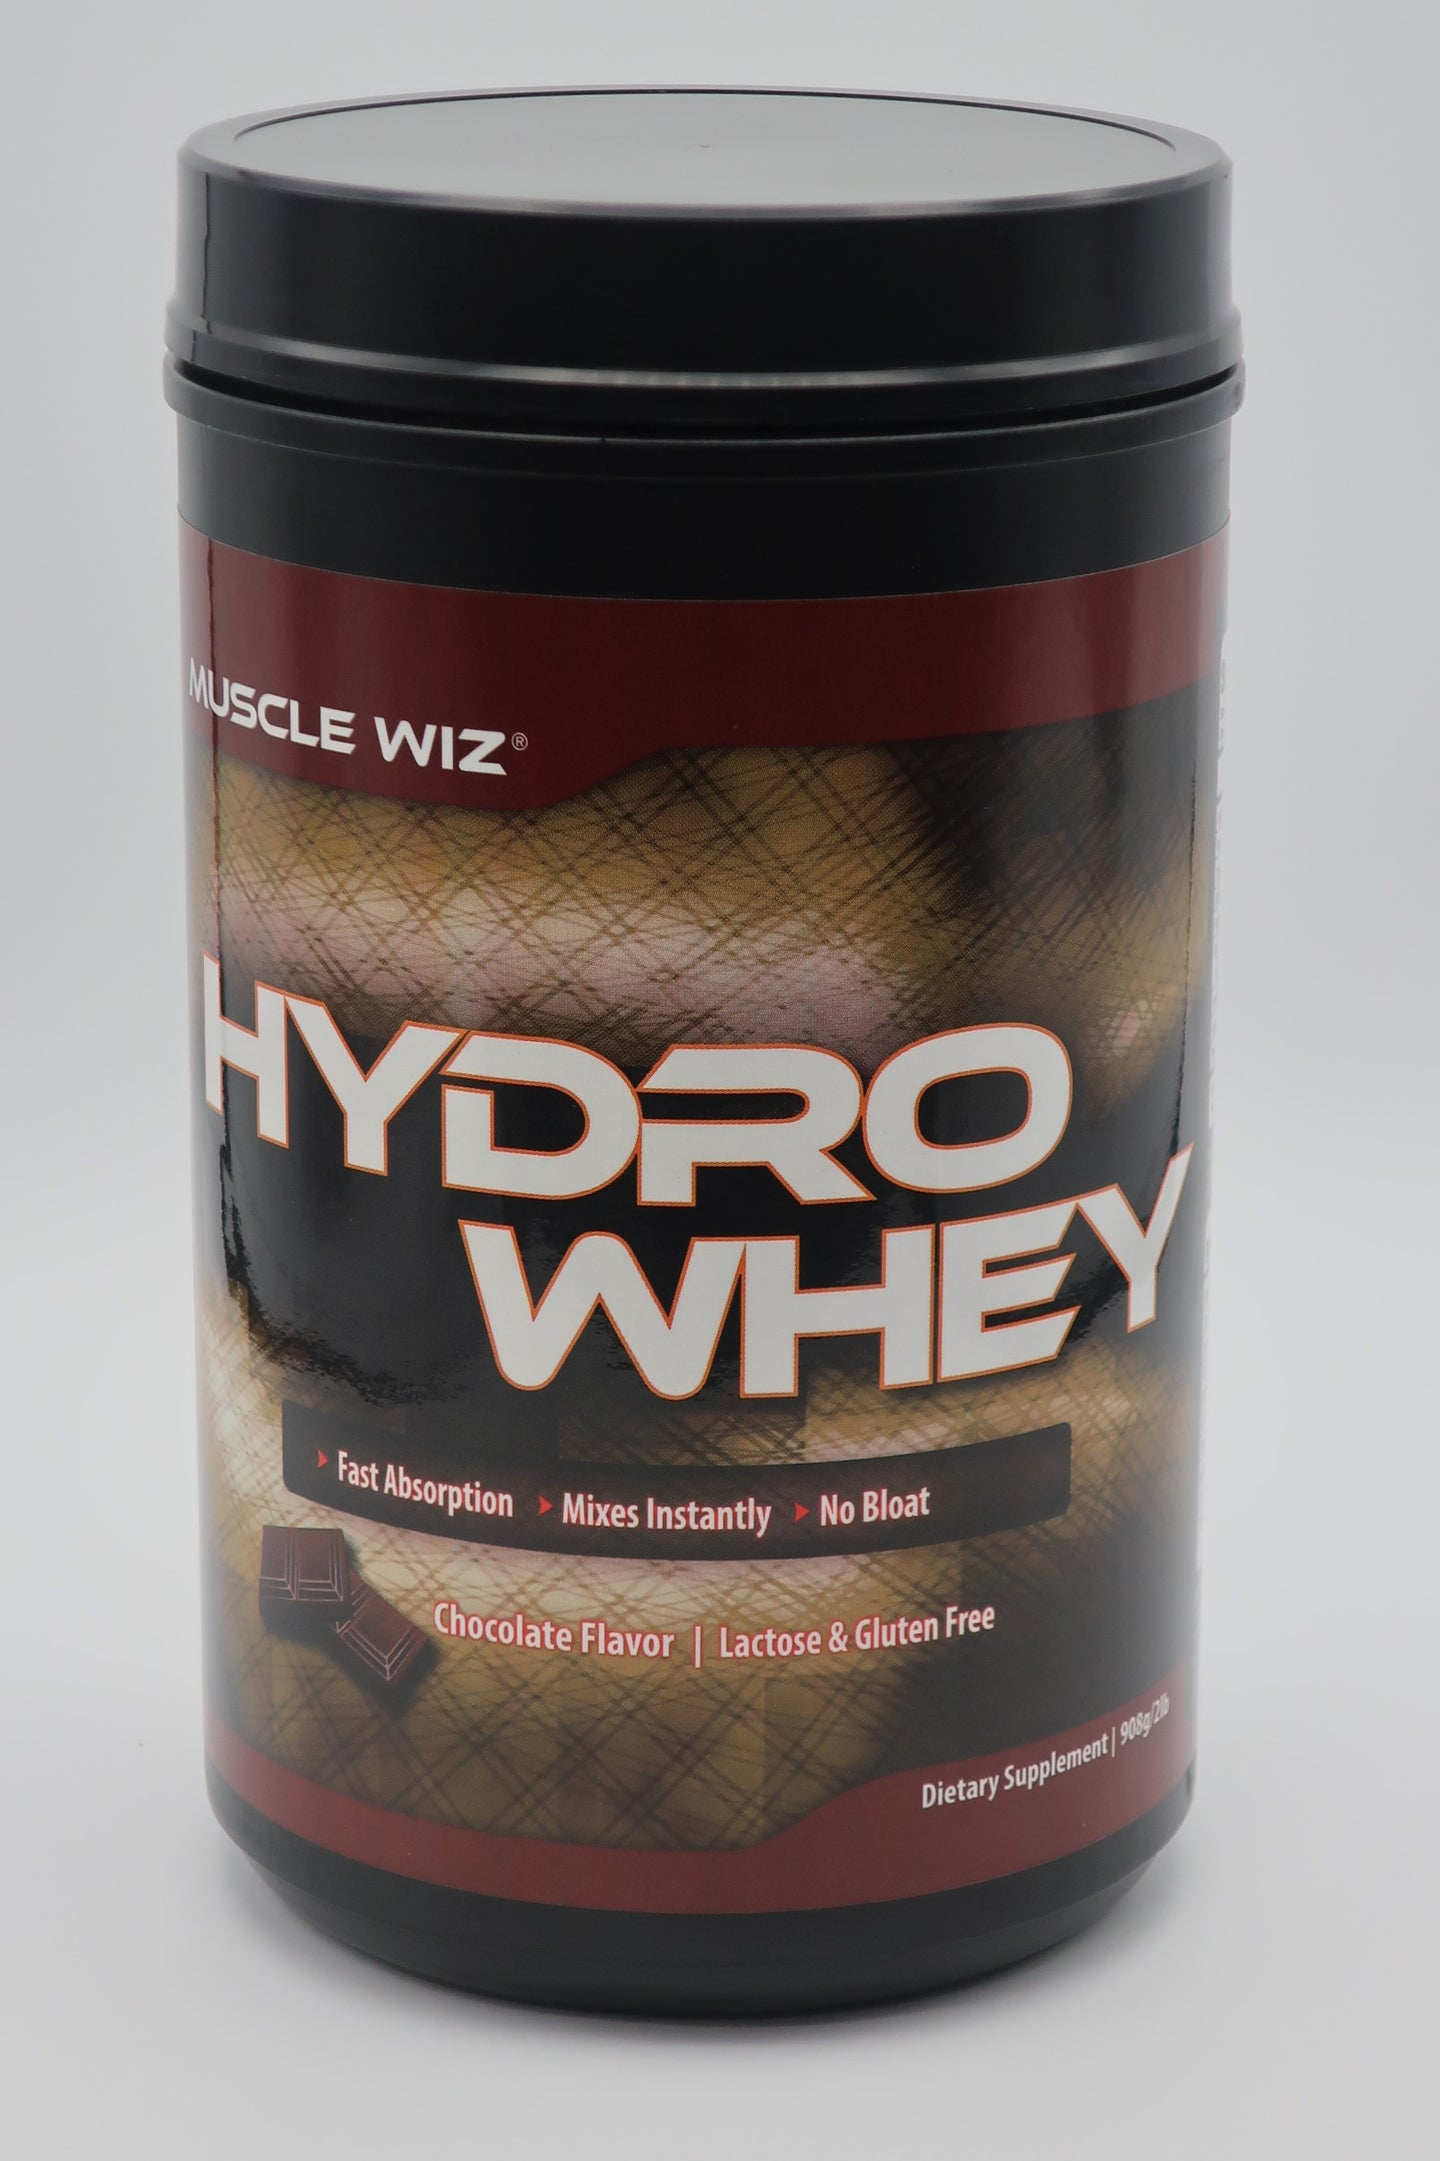 Hydro Whey Protein Powder